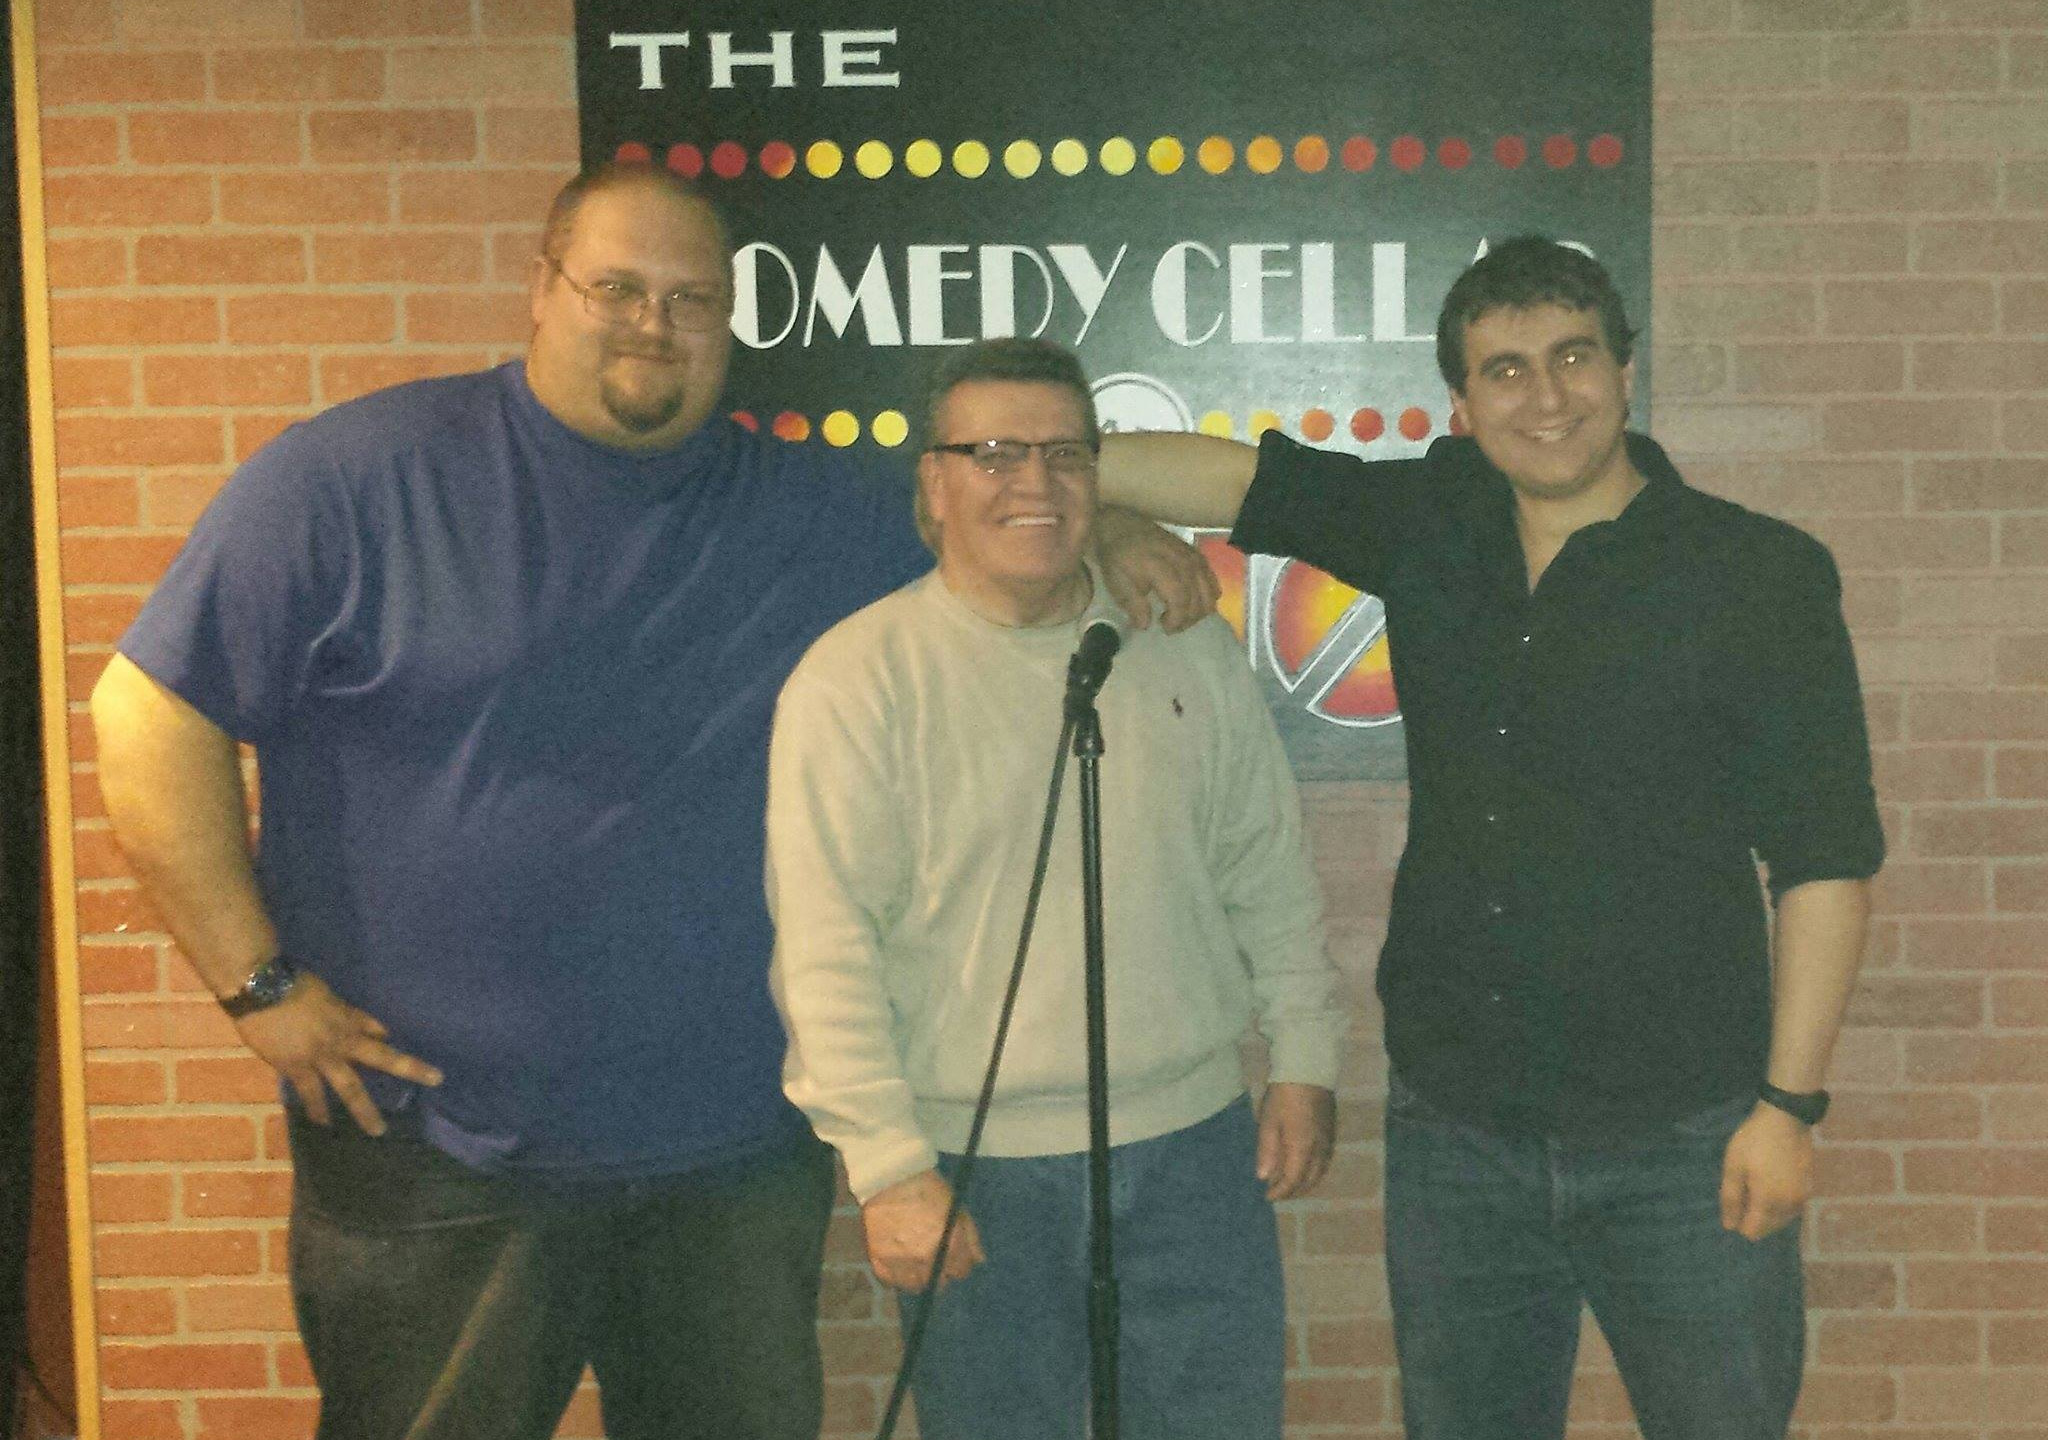 Mike Armstrong from Comedy Central, CMT, Bob & Tom Show and more!